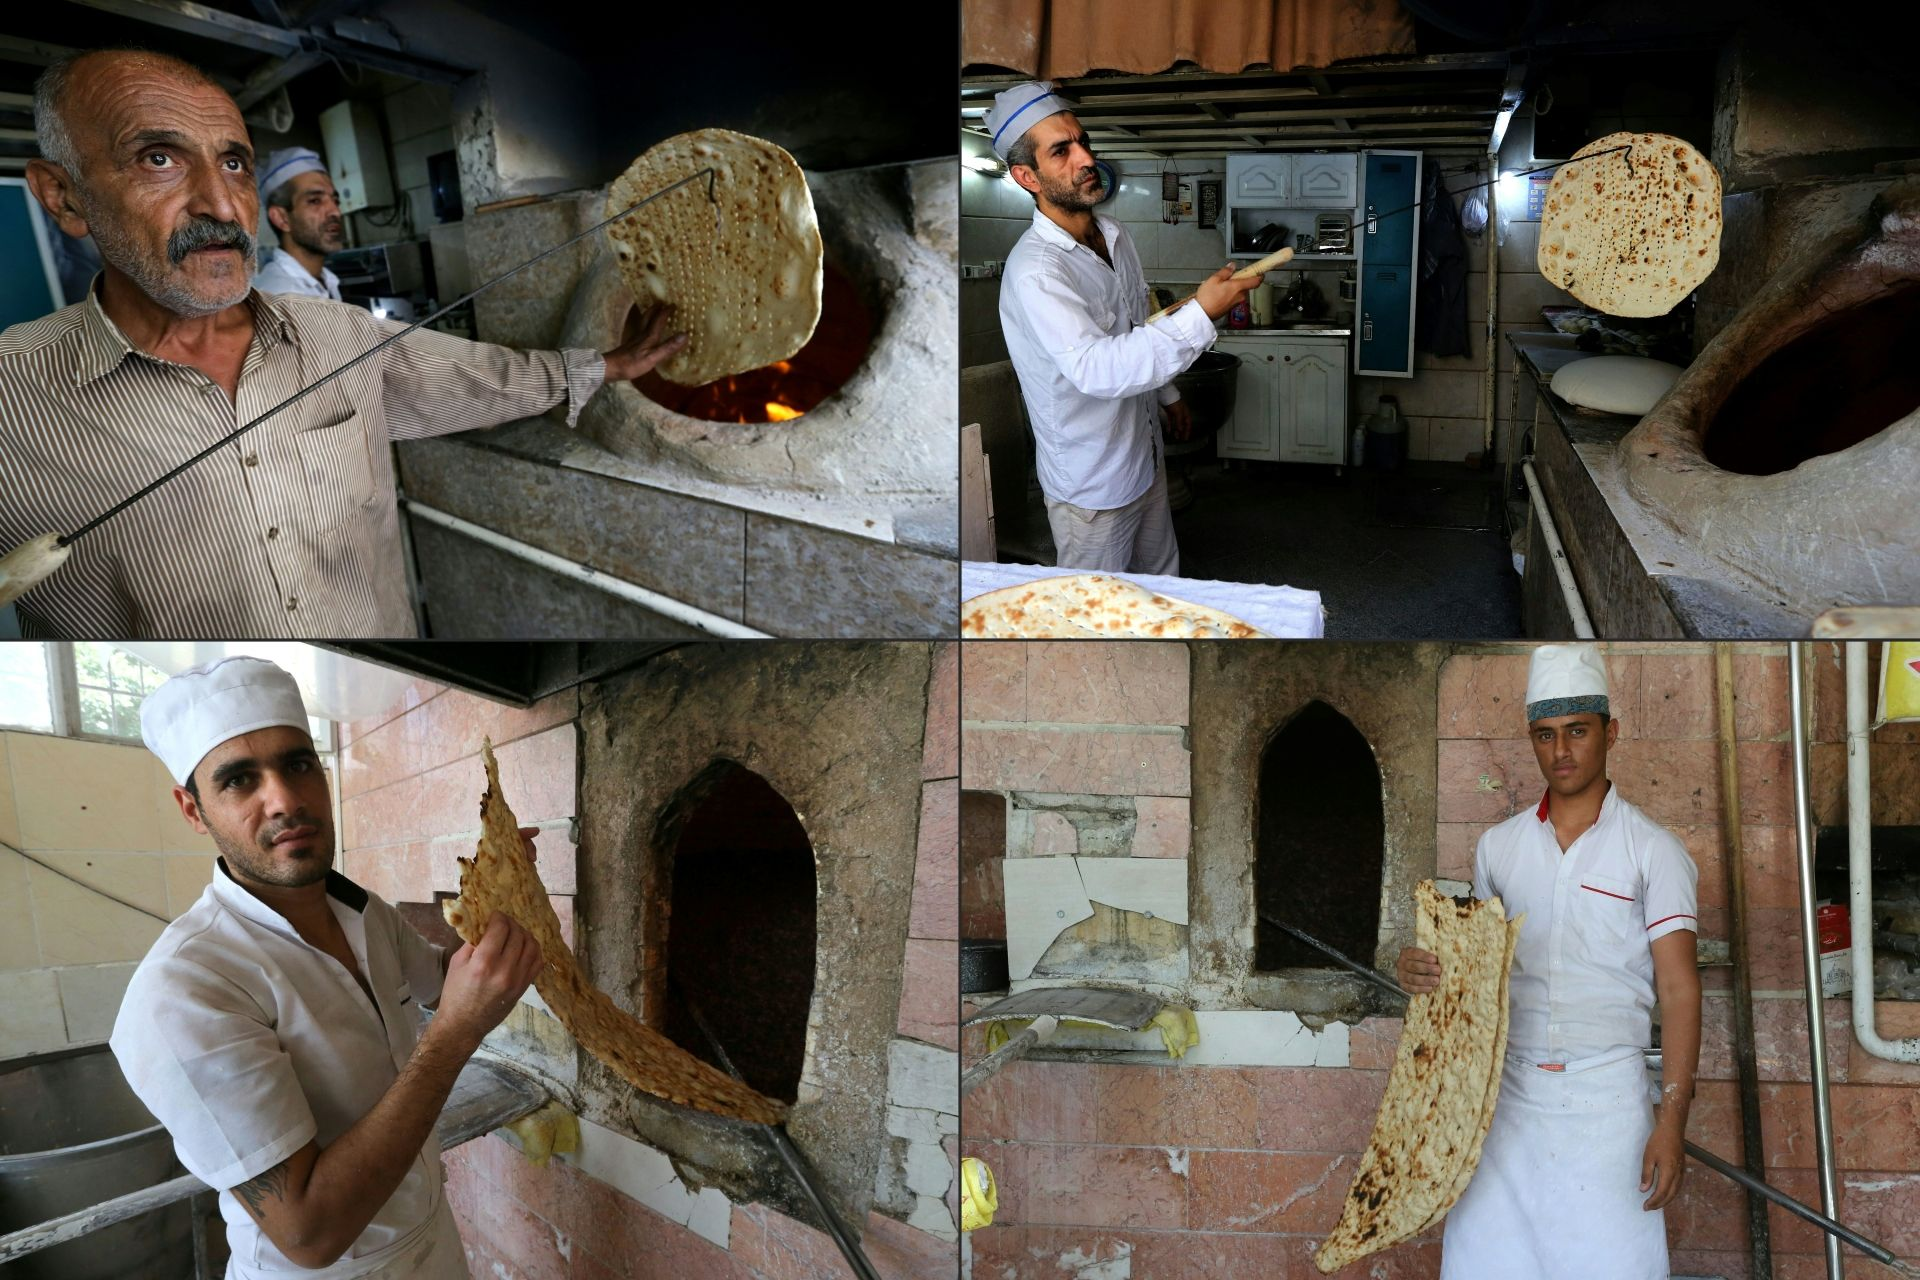 (COMBO) This combination of pictures created on June 24, 2020 shows (top) bakers Amir Jafari, 58, and Mohammad Mirzakhani, 41, making Taftoon bread; and (bottom) bakers Mohammad, 30, and Ali, 21, making Sangak bread; at separate bakeries in Iran's capital Tehran on June 13, 2020. (Photos by ATTA KENARE / AFP)